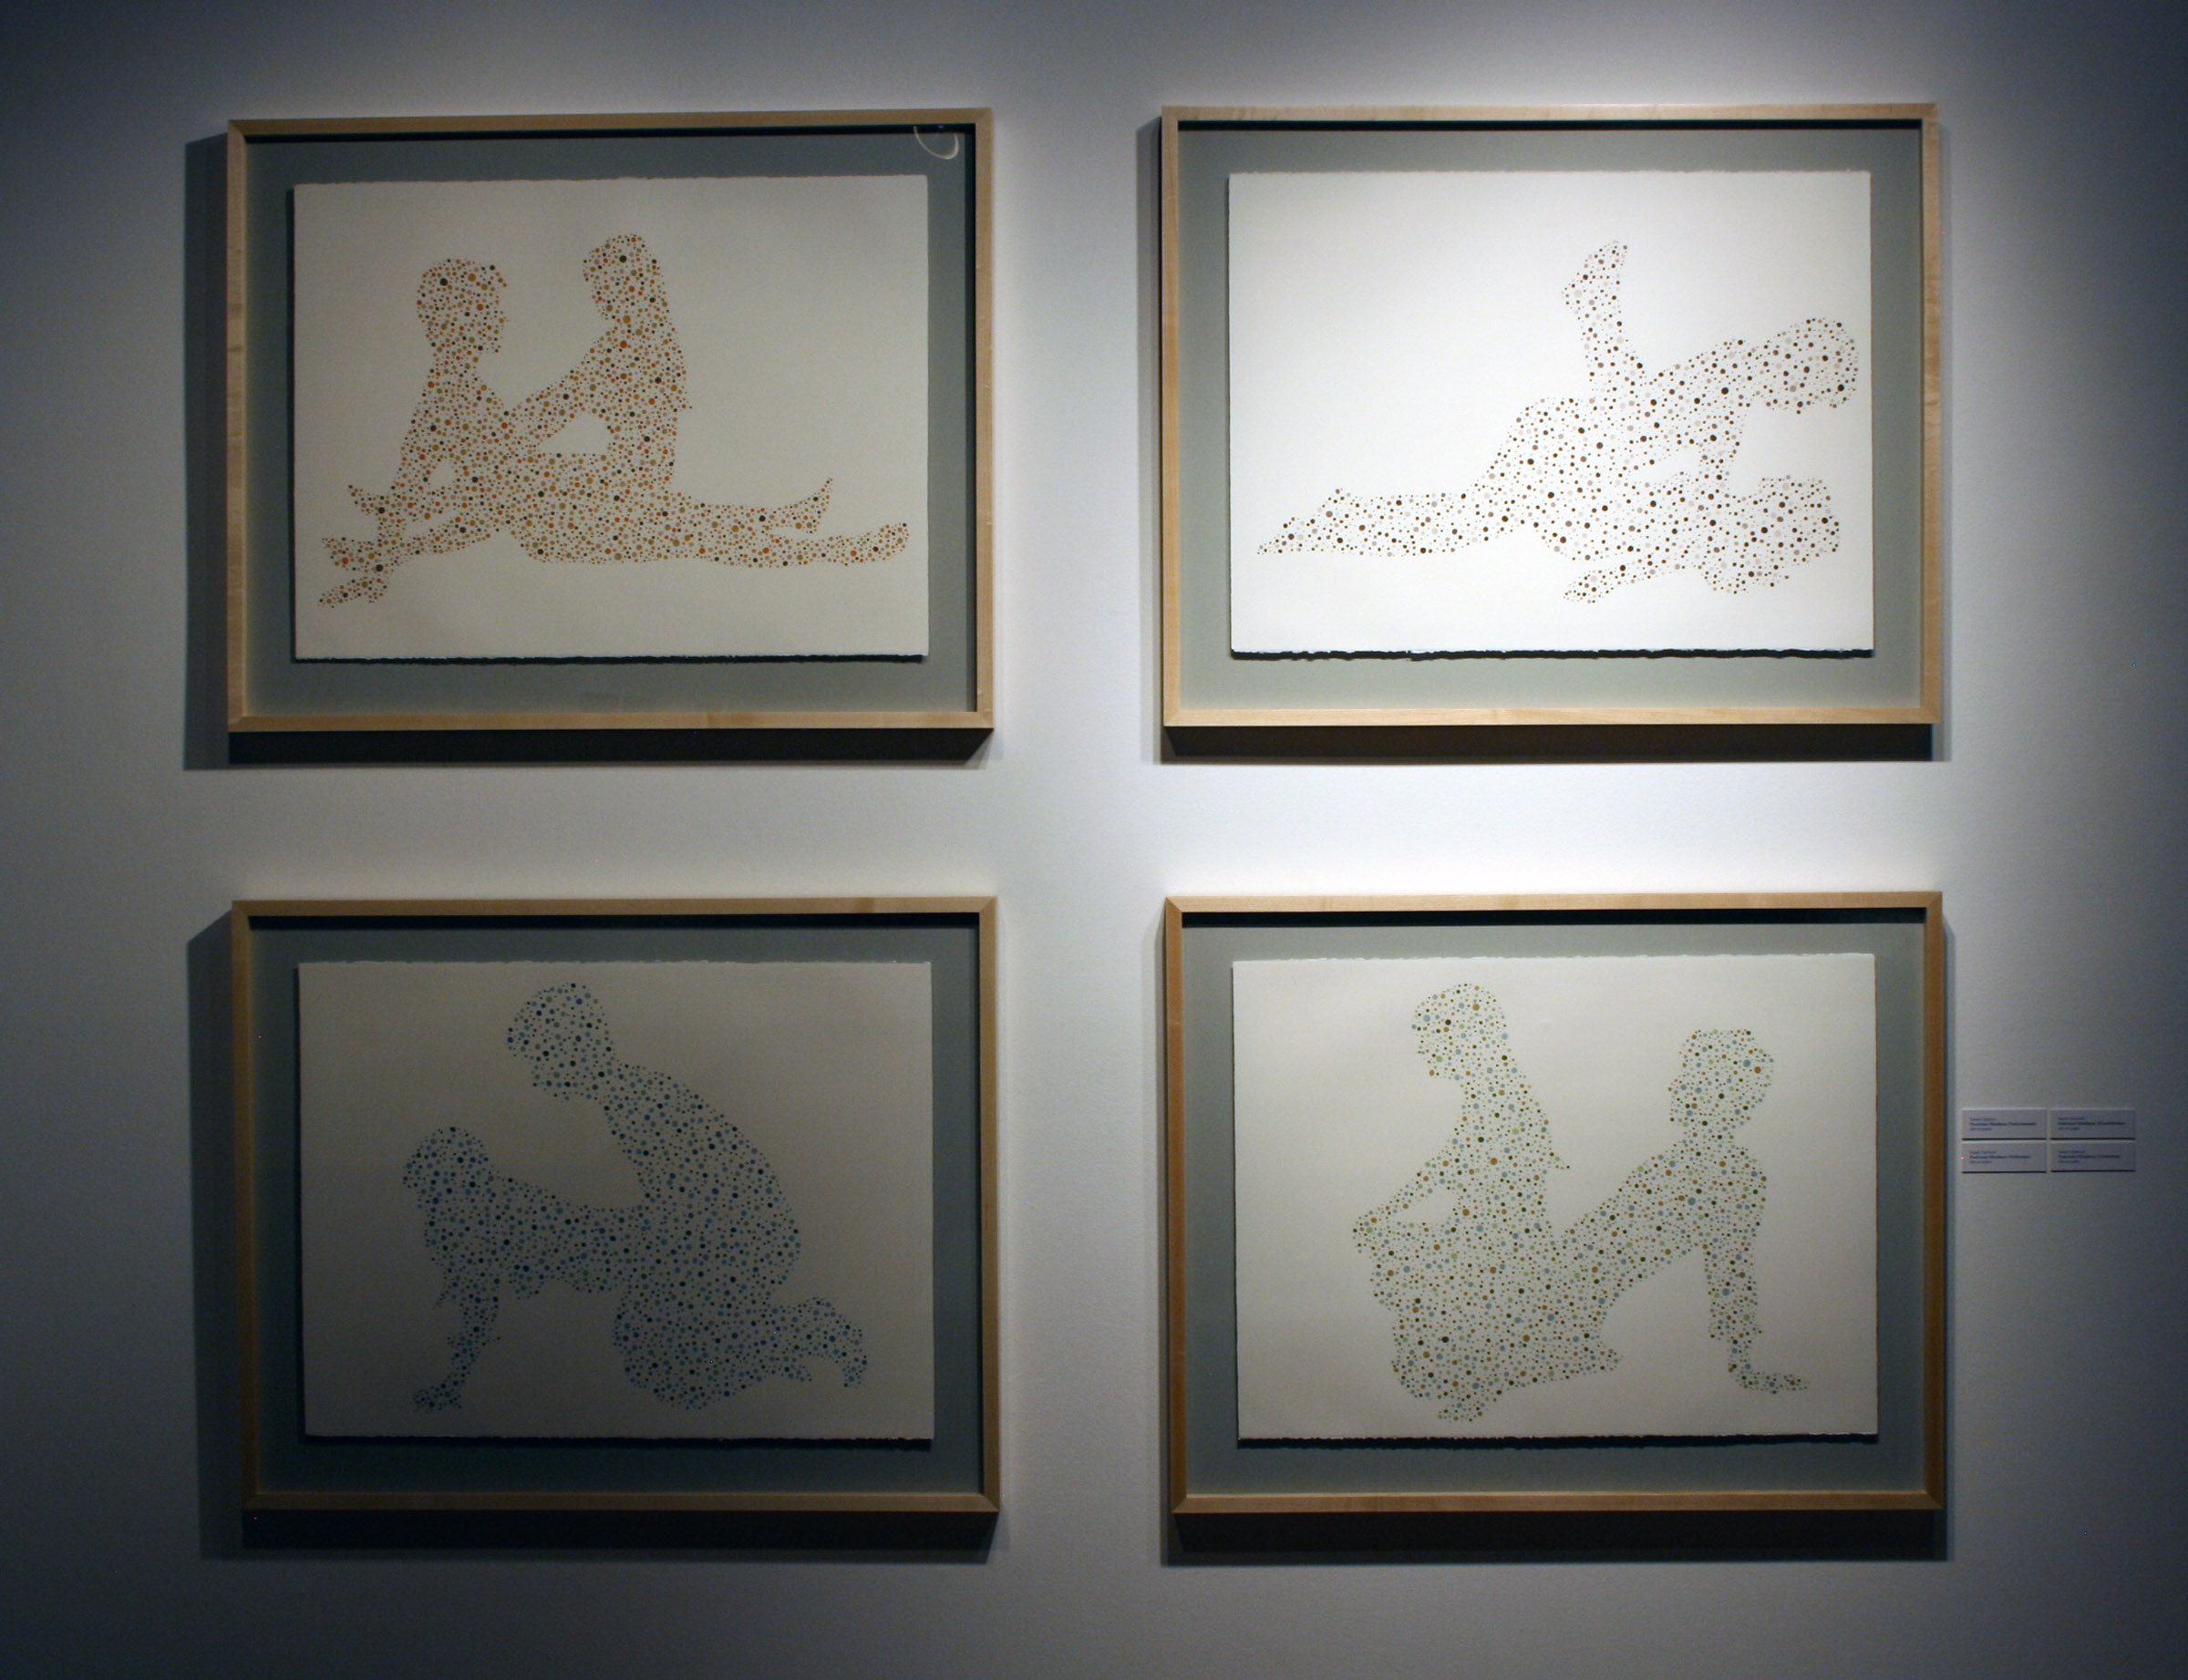 Positional Blindness Series , Ink on paper, 2010 (framed in exhibition)